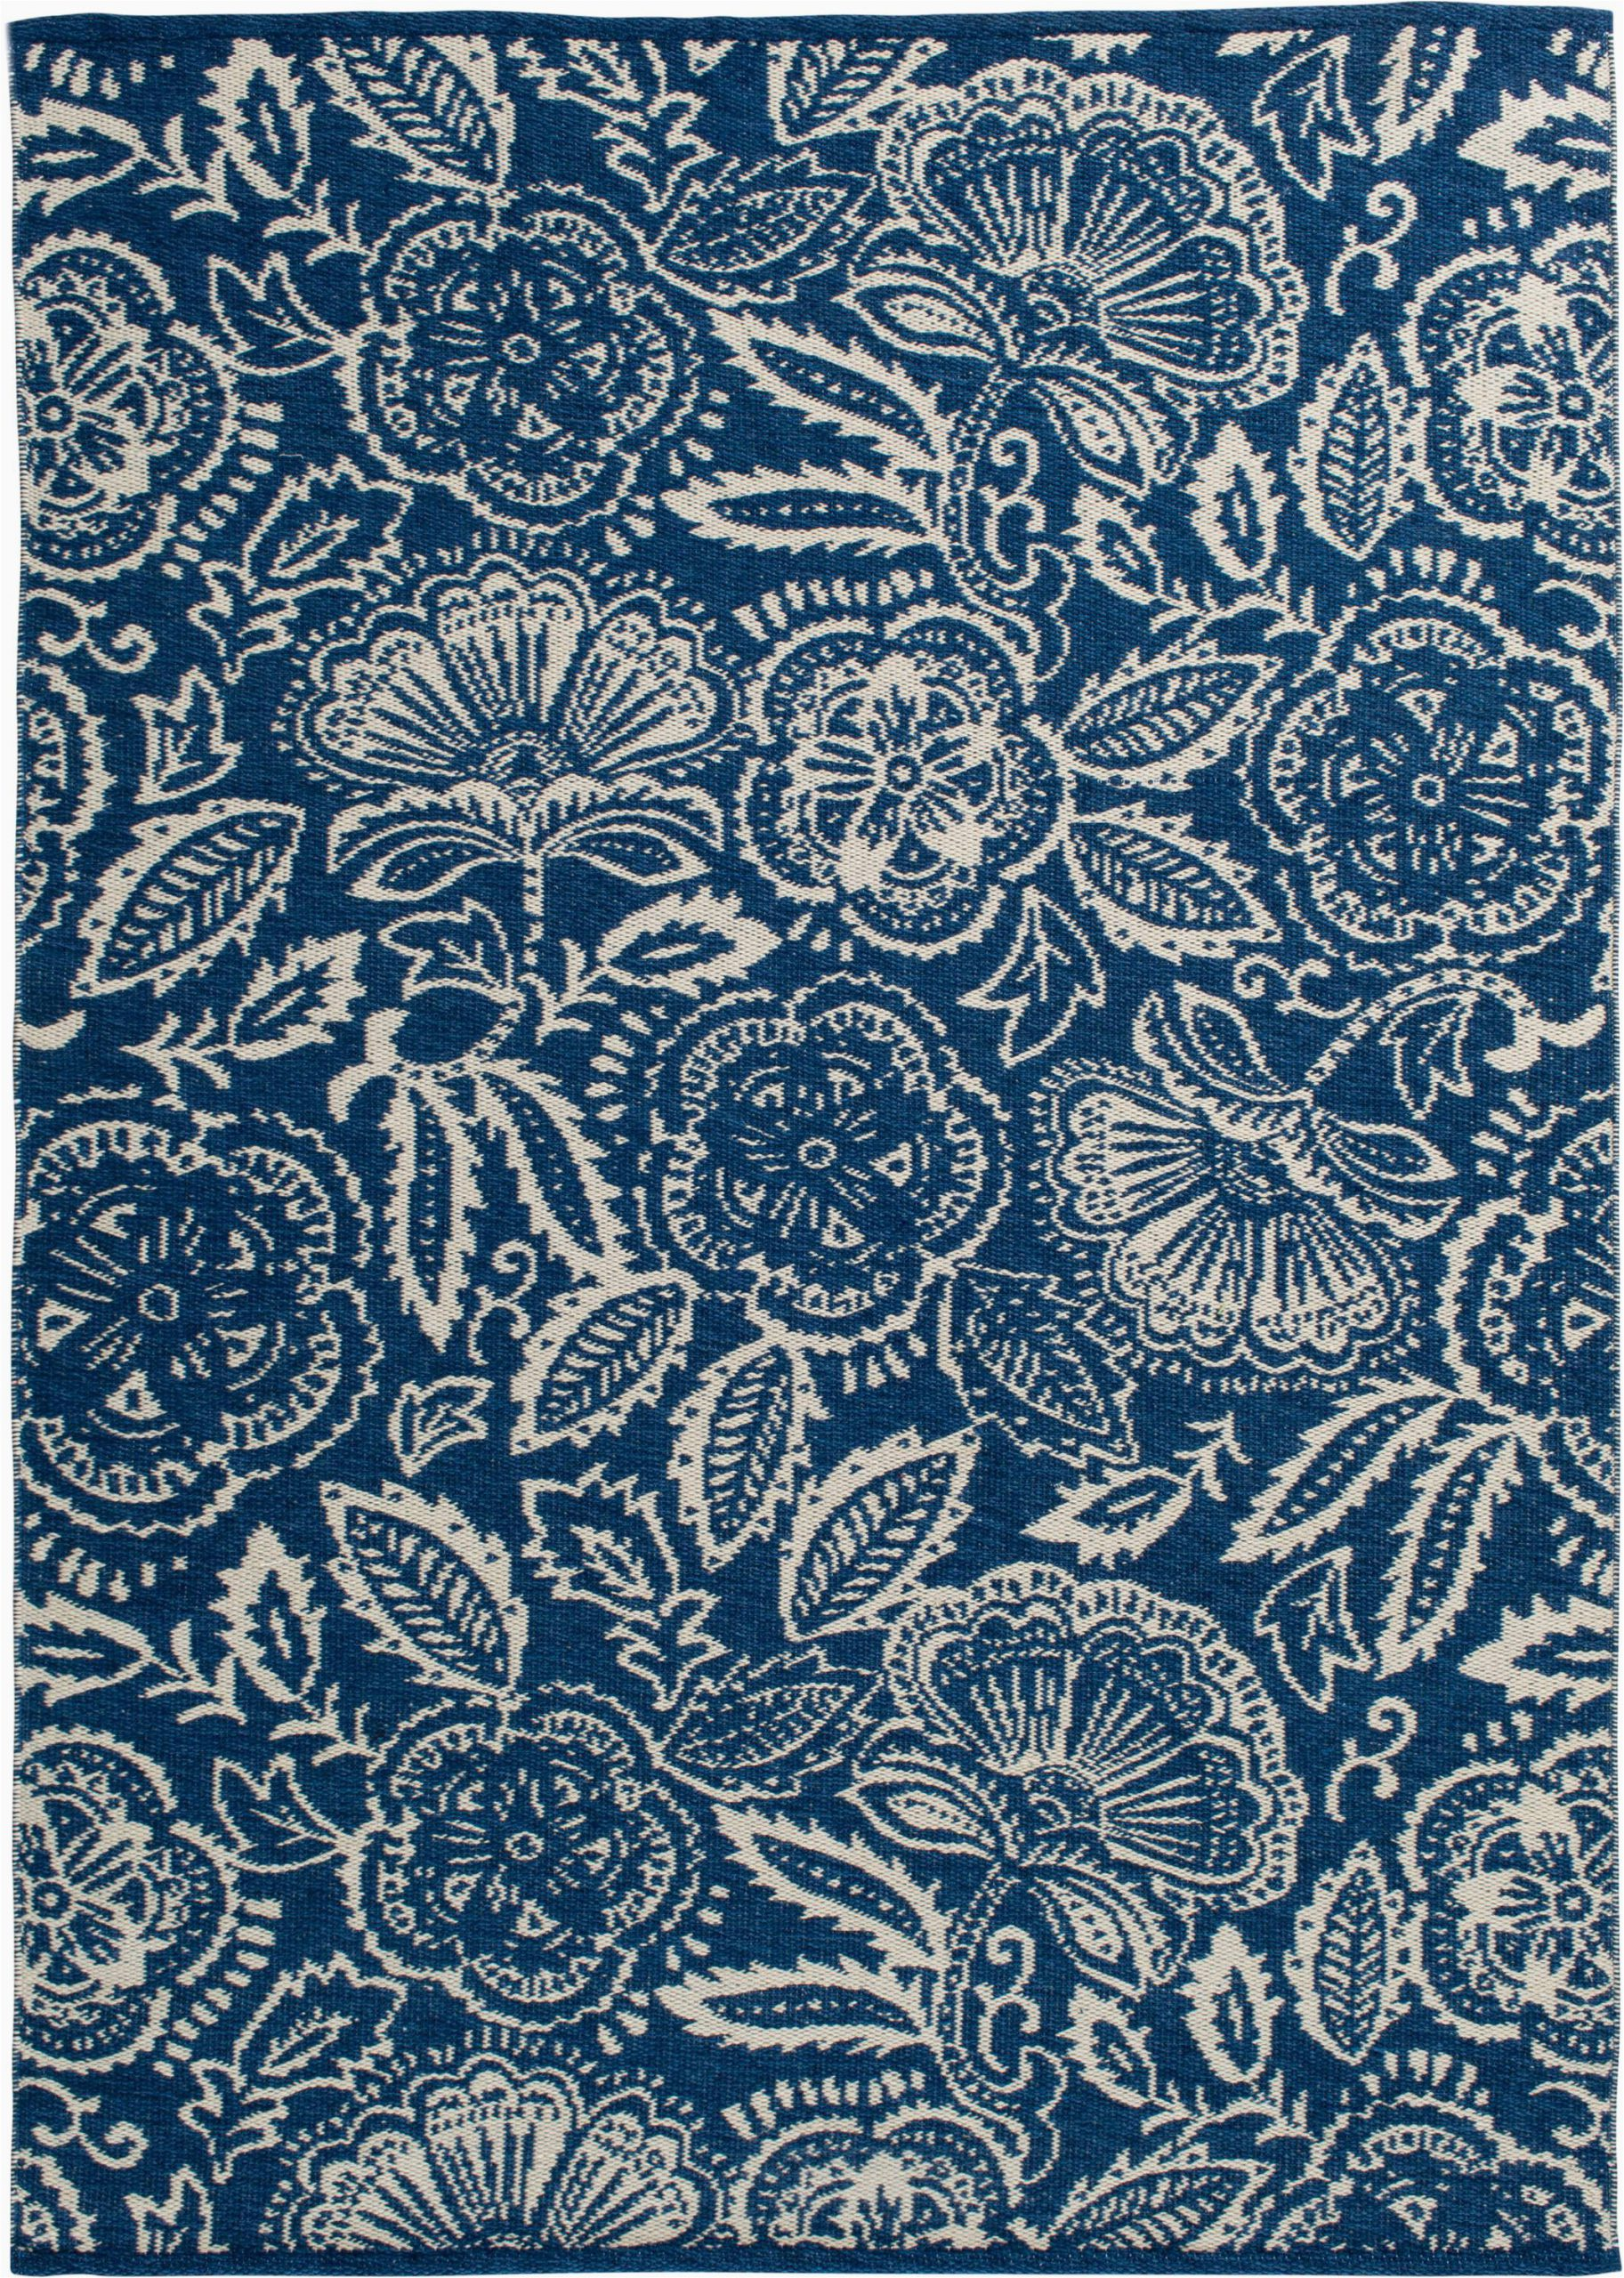 Better Homes and Gardens area Rugs at Walmart Better Homes & Gardens Midnight Blooms Indoor Outdoor area Rug Multiple Sizes